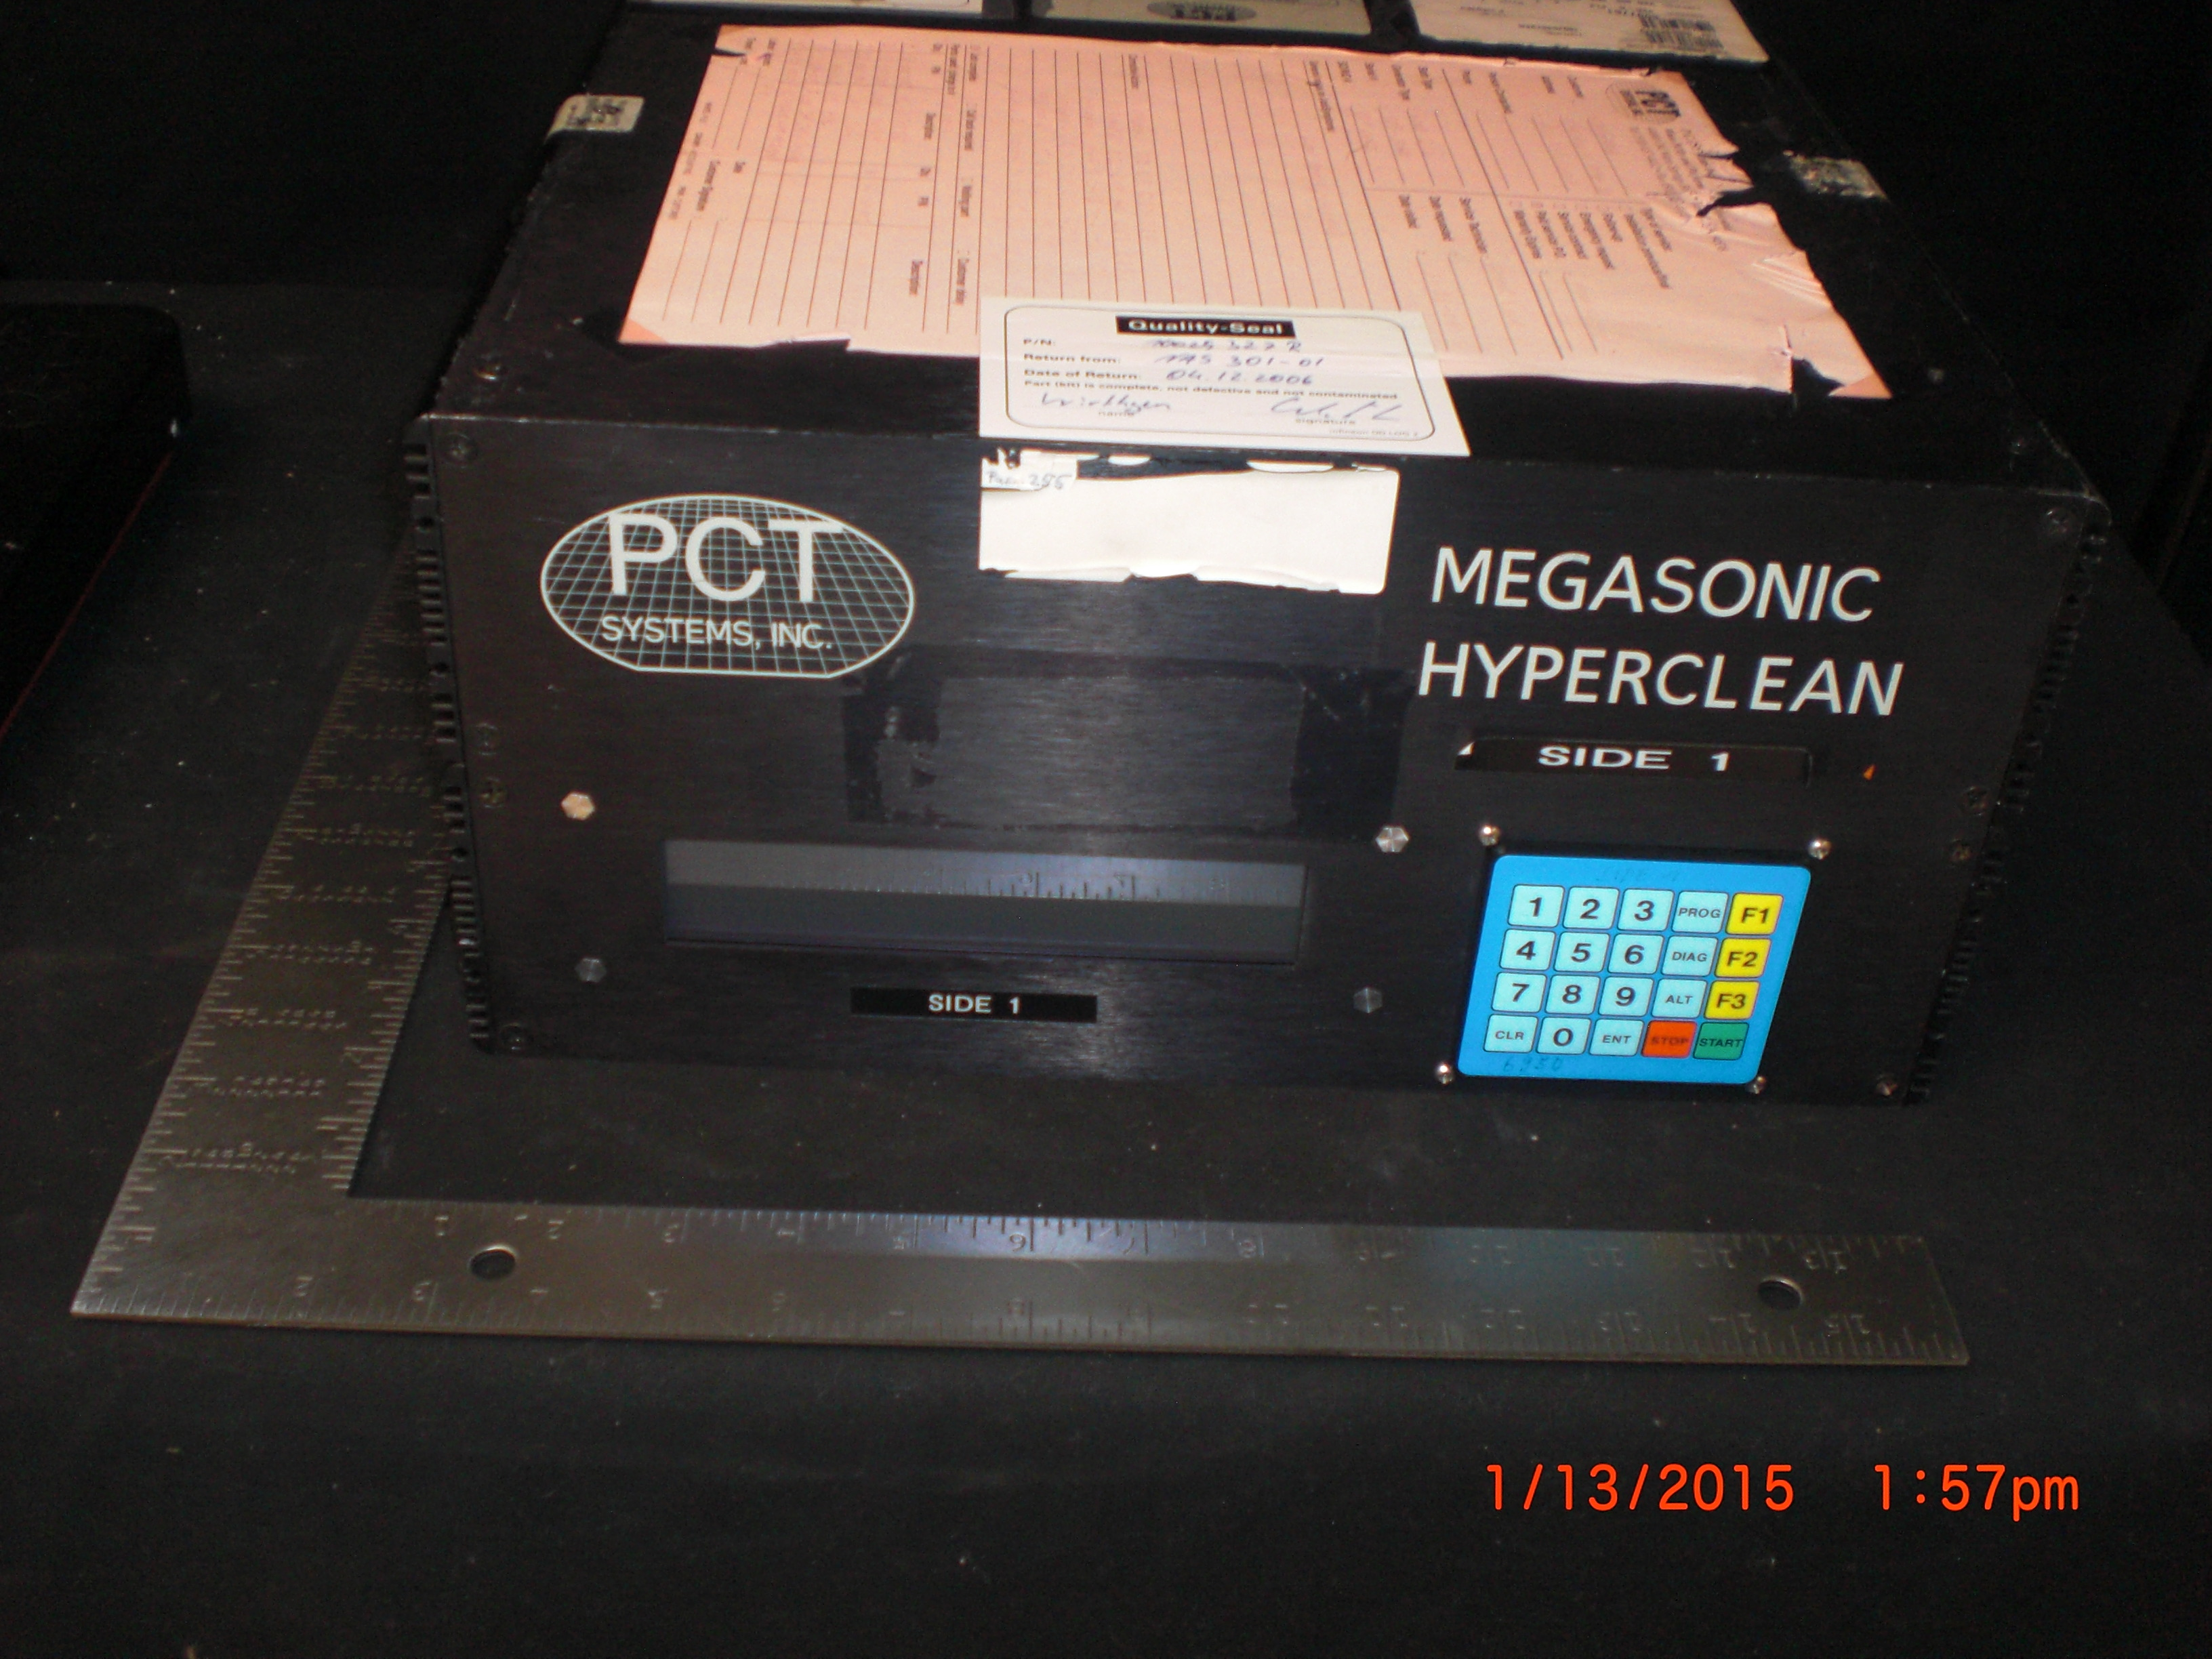 Generator Megasonic PCT SYSTEMS 6000 DE Hyperclean Steag UNTESTED